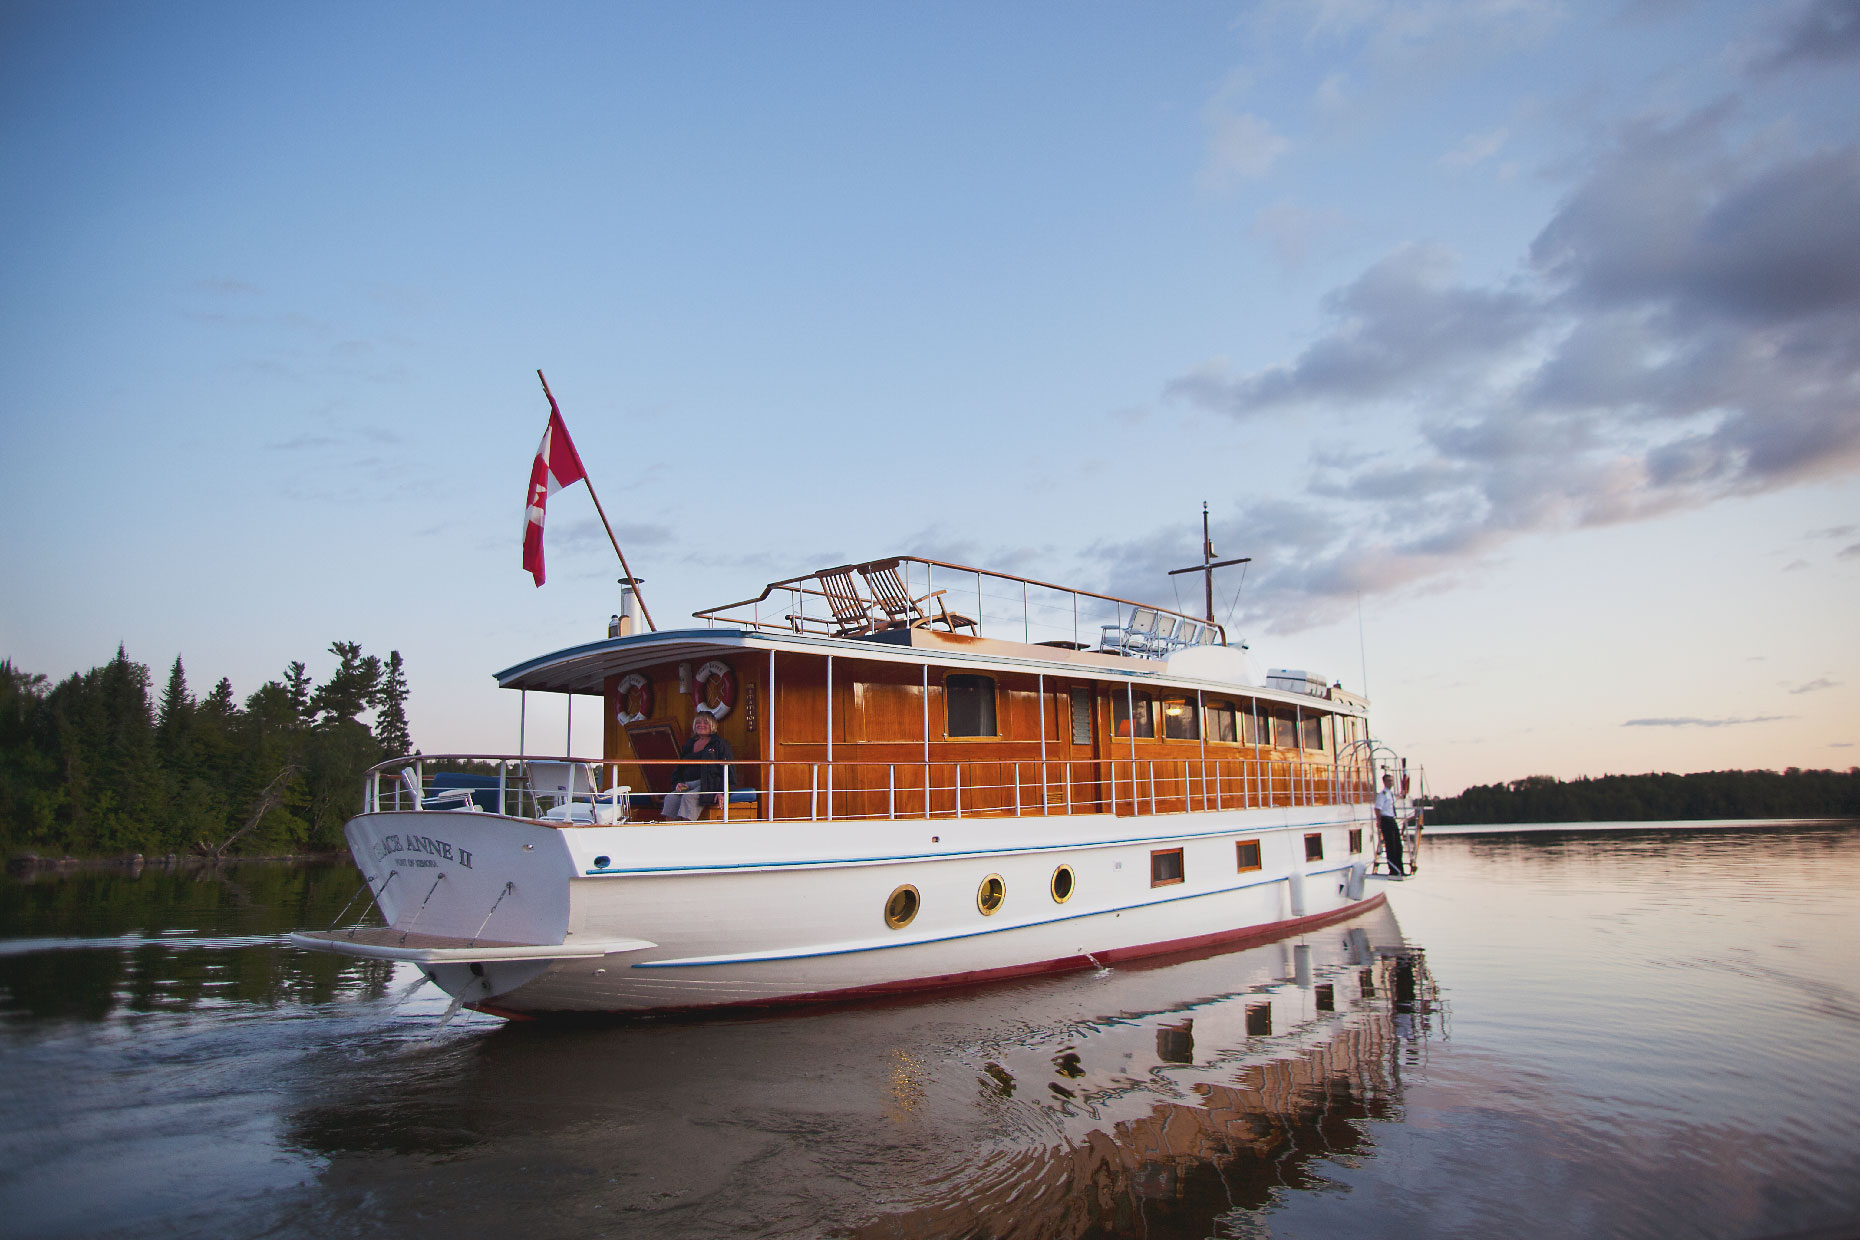 Stacey Van Berkel Photography I Evening cruise on the Grace Anne II Luxury 1930's Yacht I Lake of the Woods I Kenora, Ontario, Canada